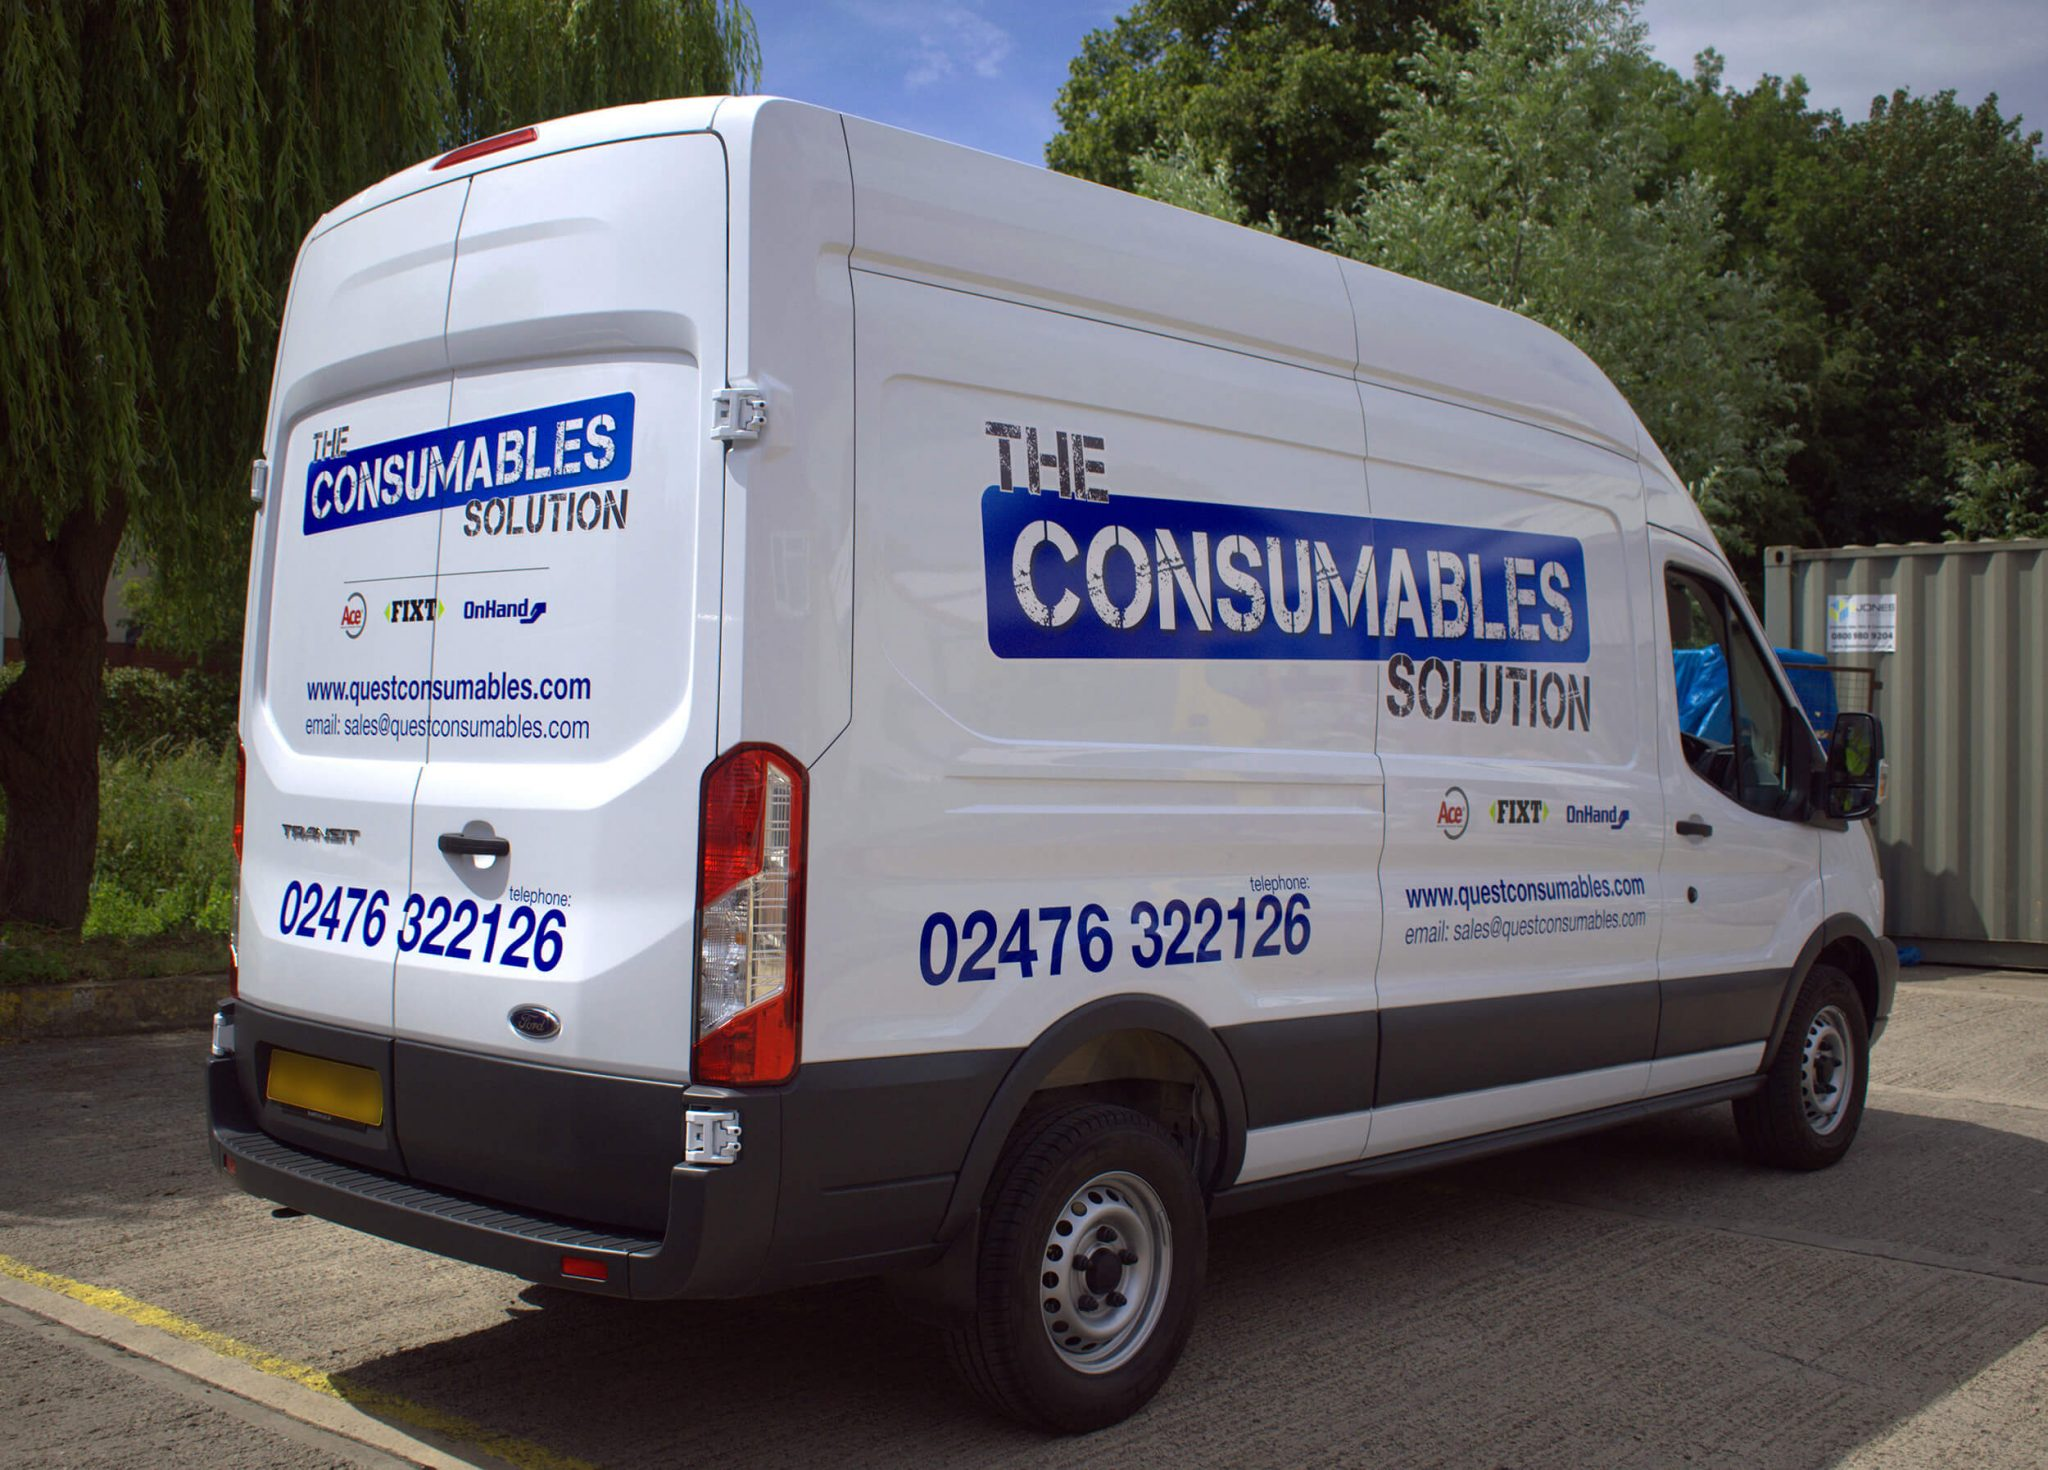 Van graphics, branding, car graphics, vehicle wraps